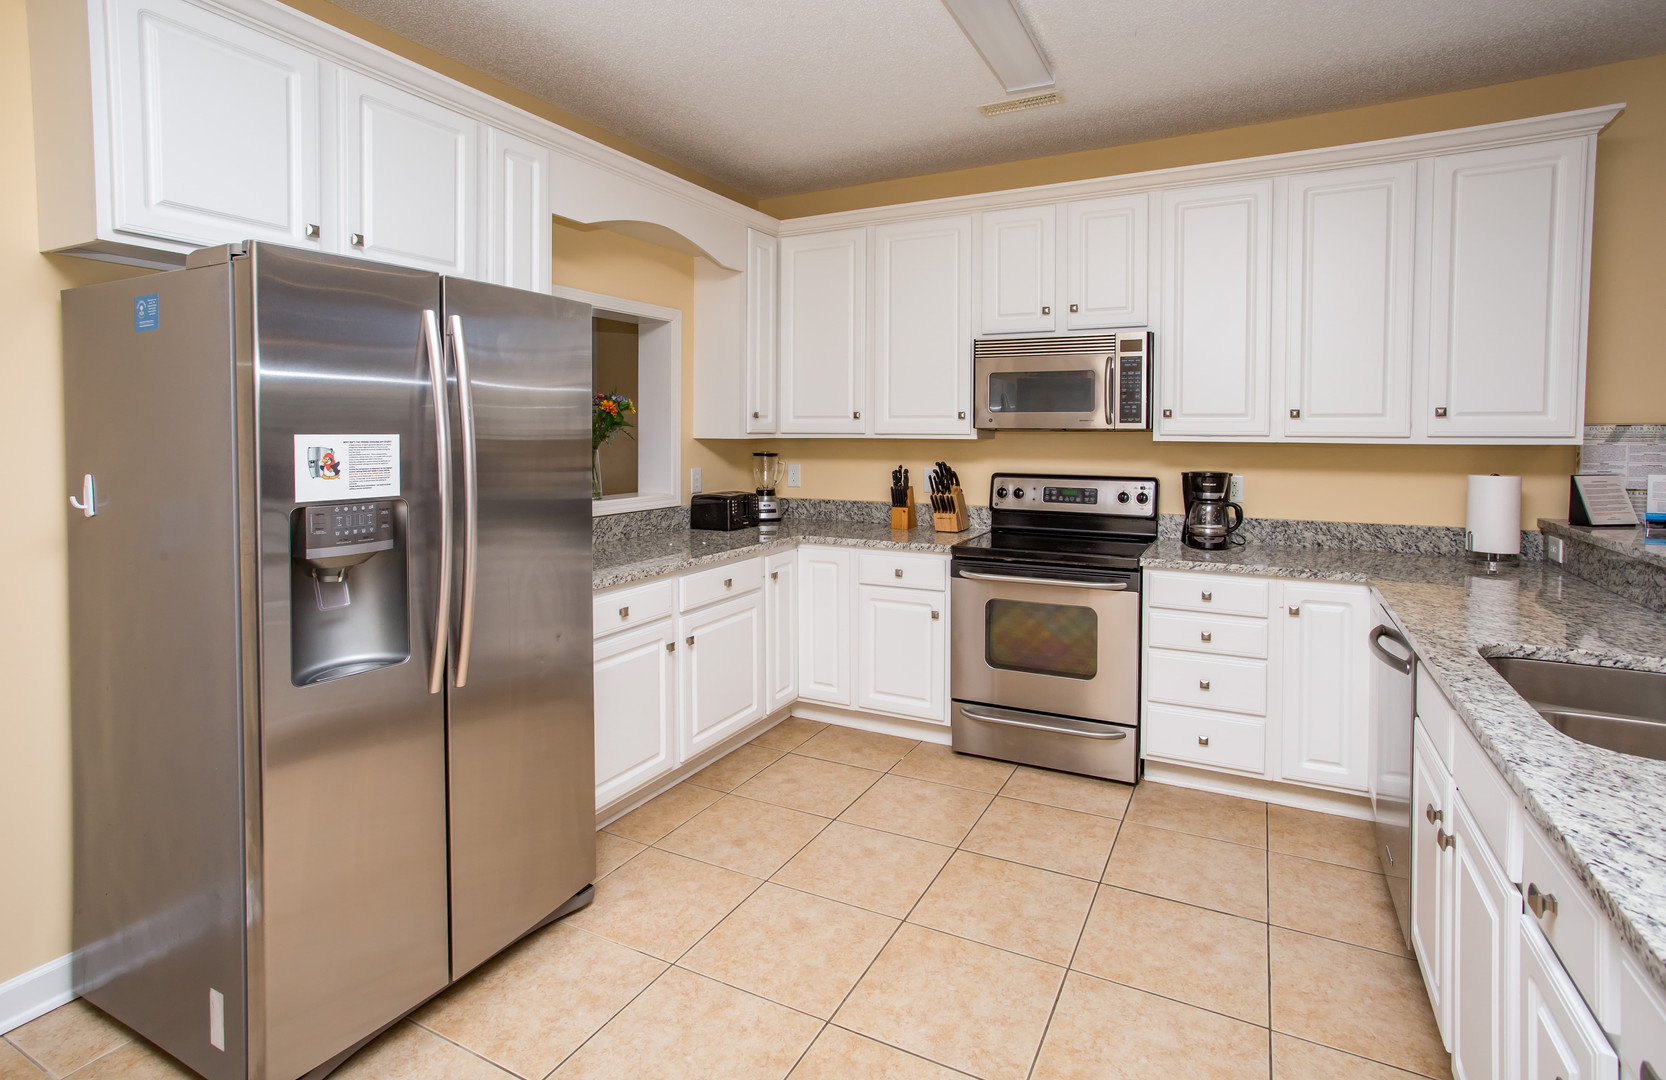 9 Flam Remodeled Kitchen